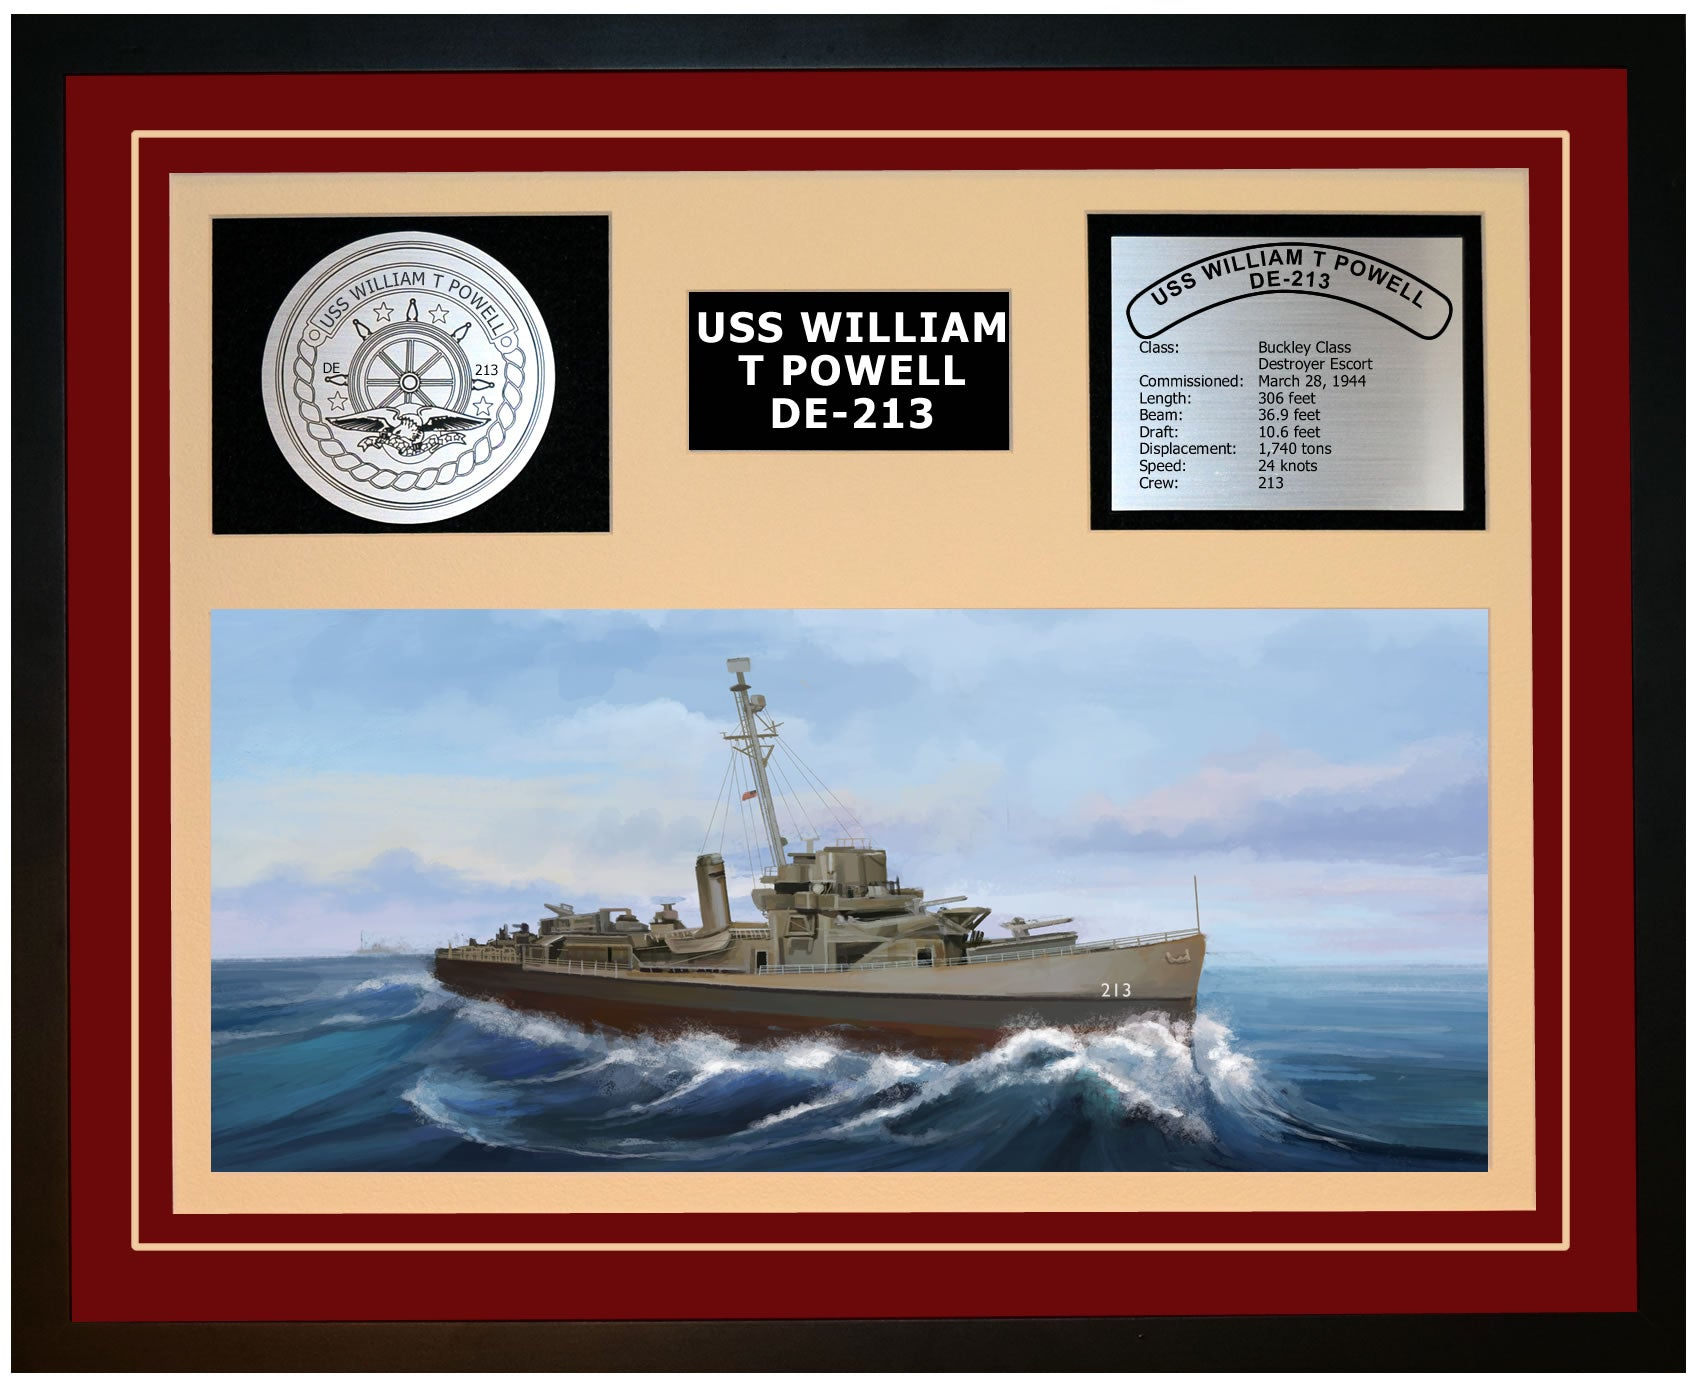 USS WILLIAM T POWELL DE-213 Framed Navy Ship Display Burgundy